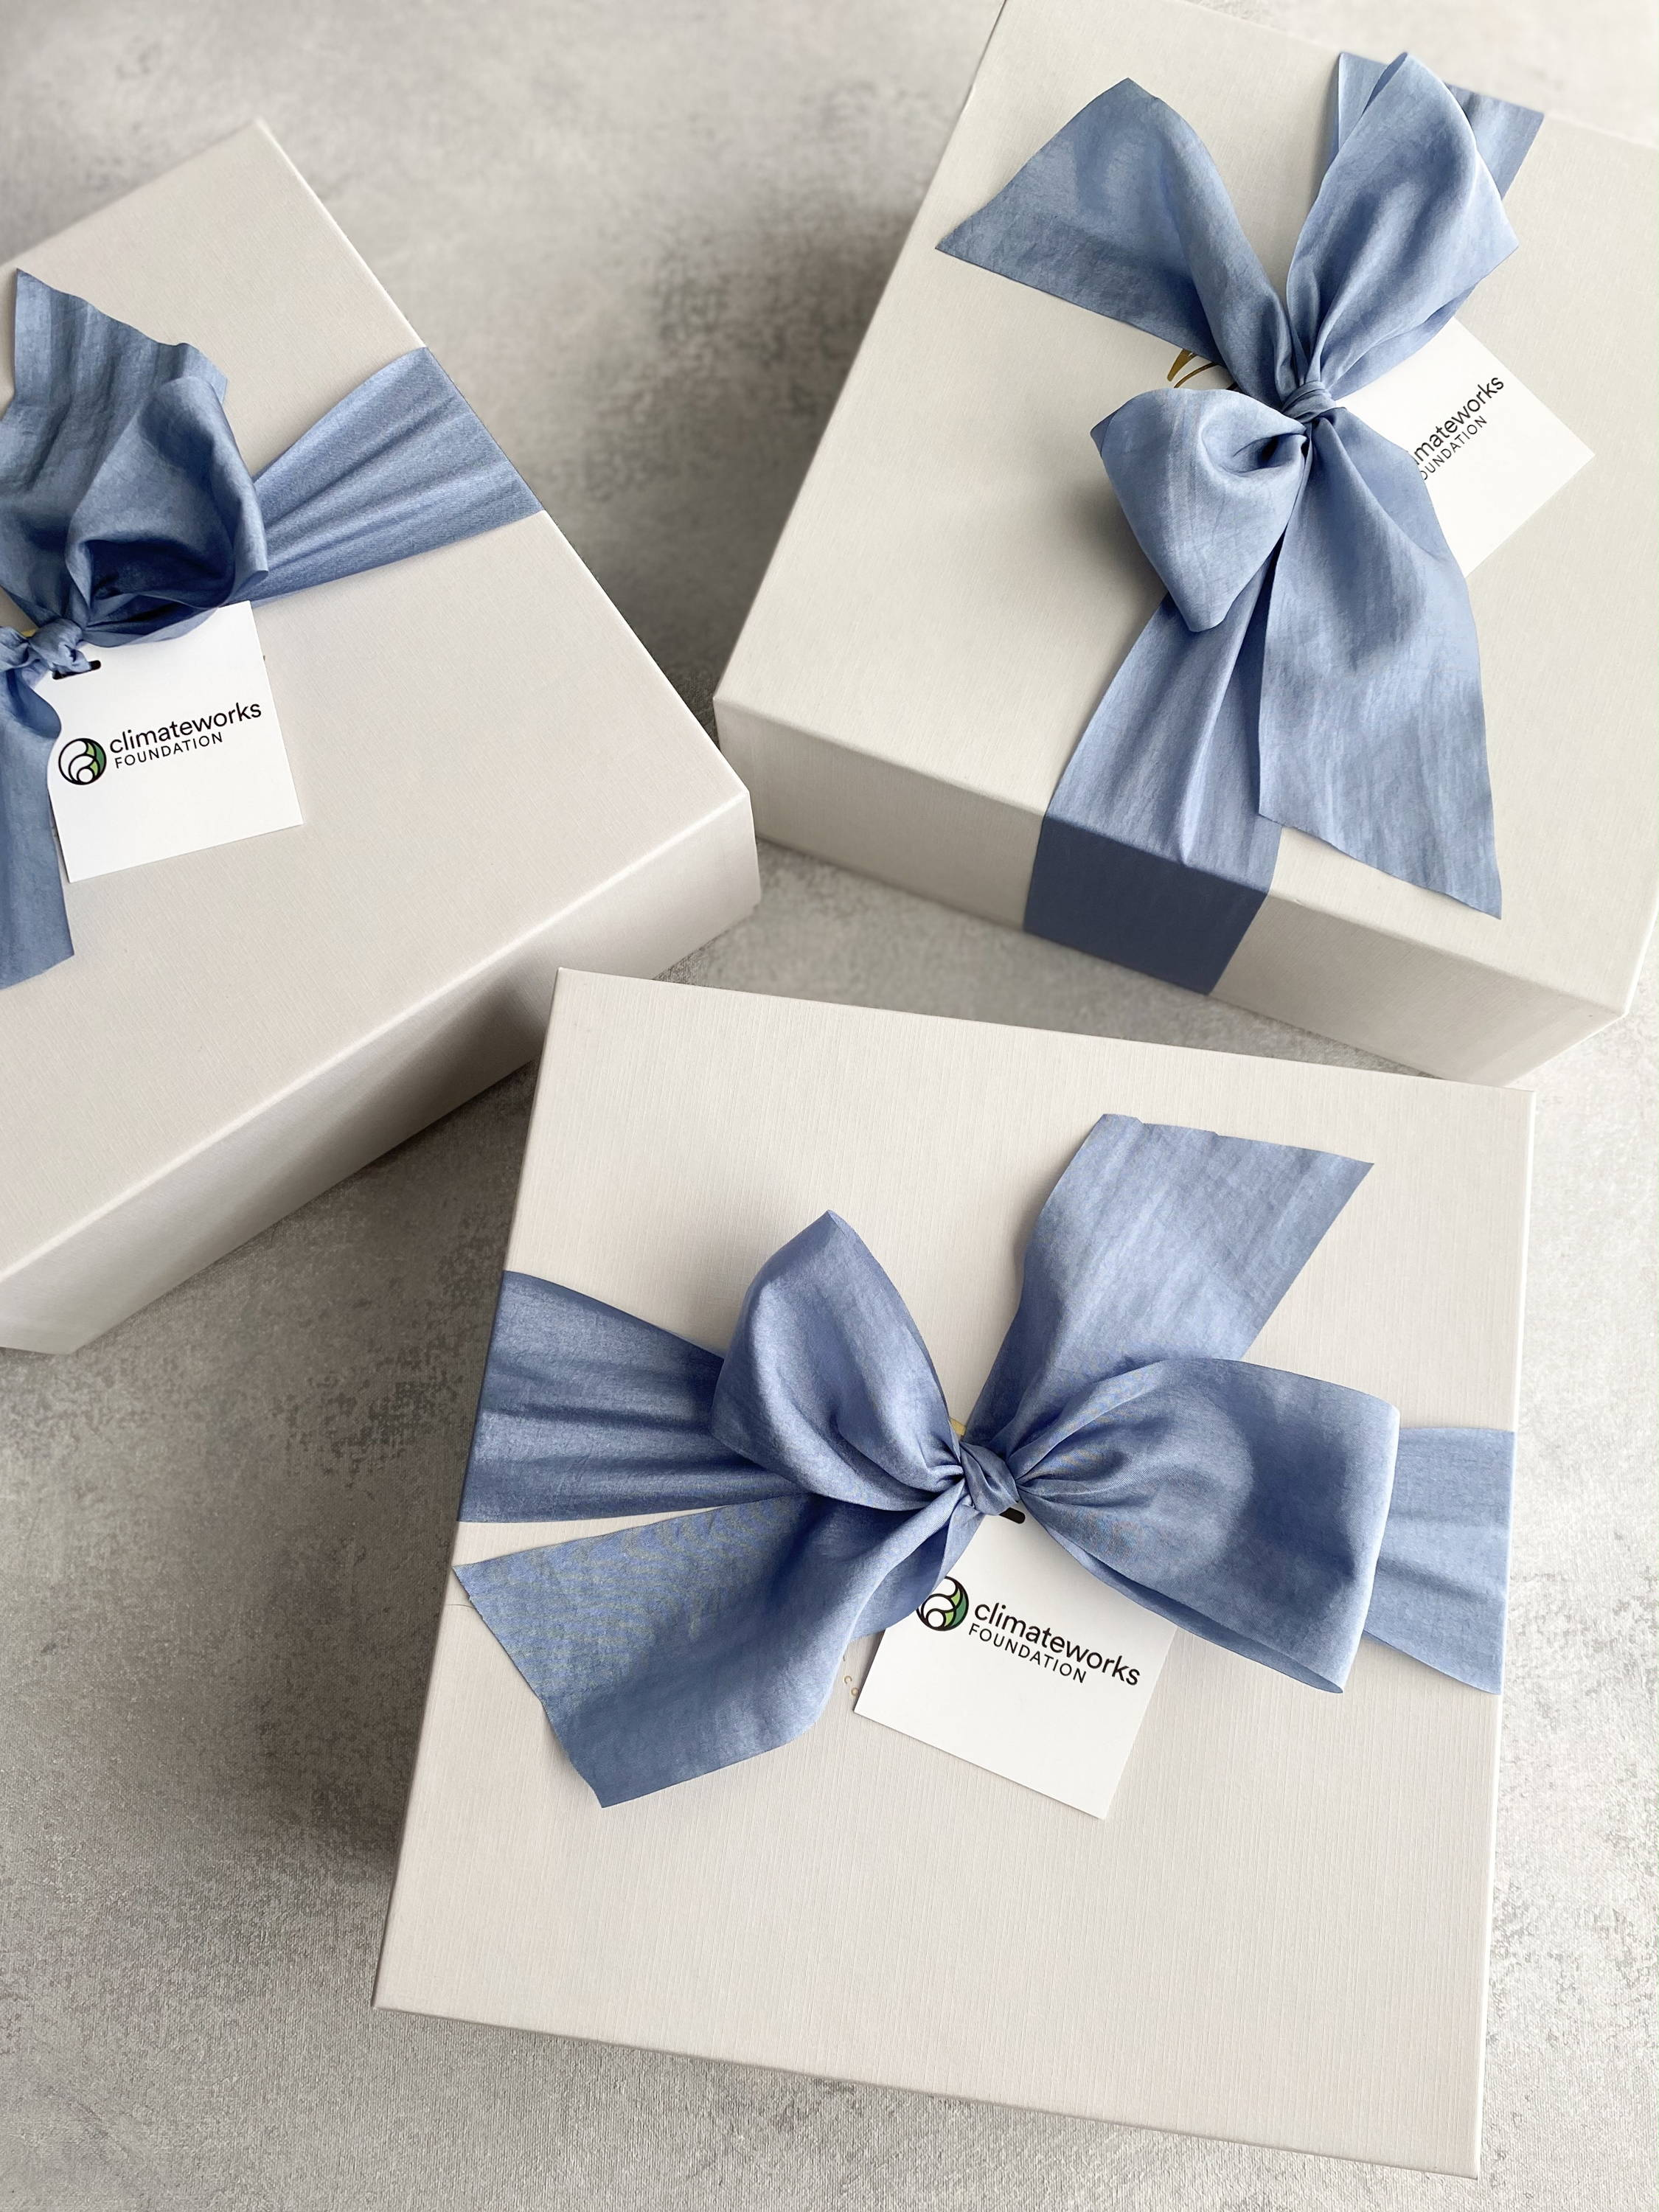 Ongoing gifting for clients and teams with Box+Wood Gift Company